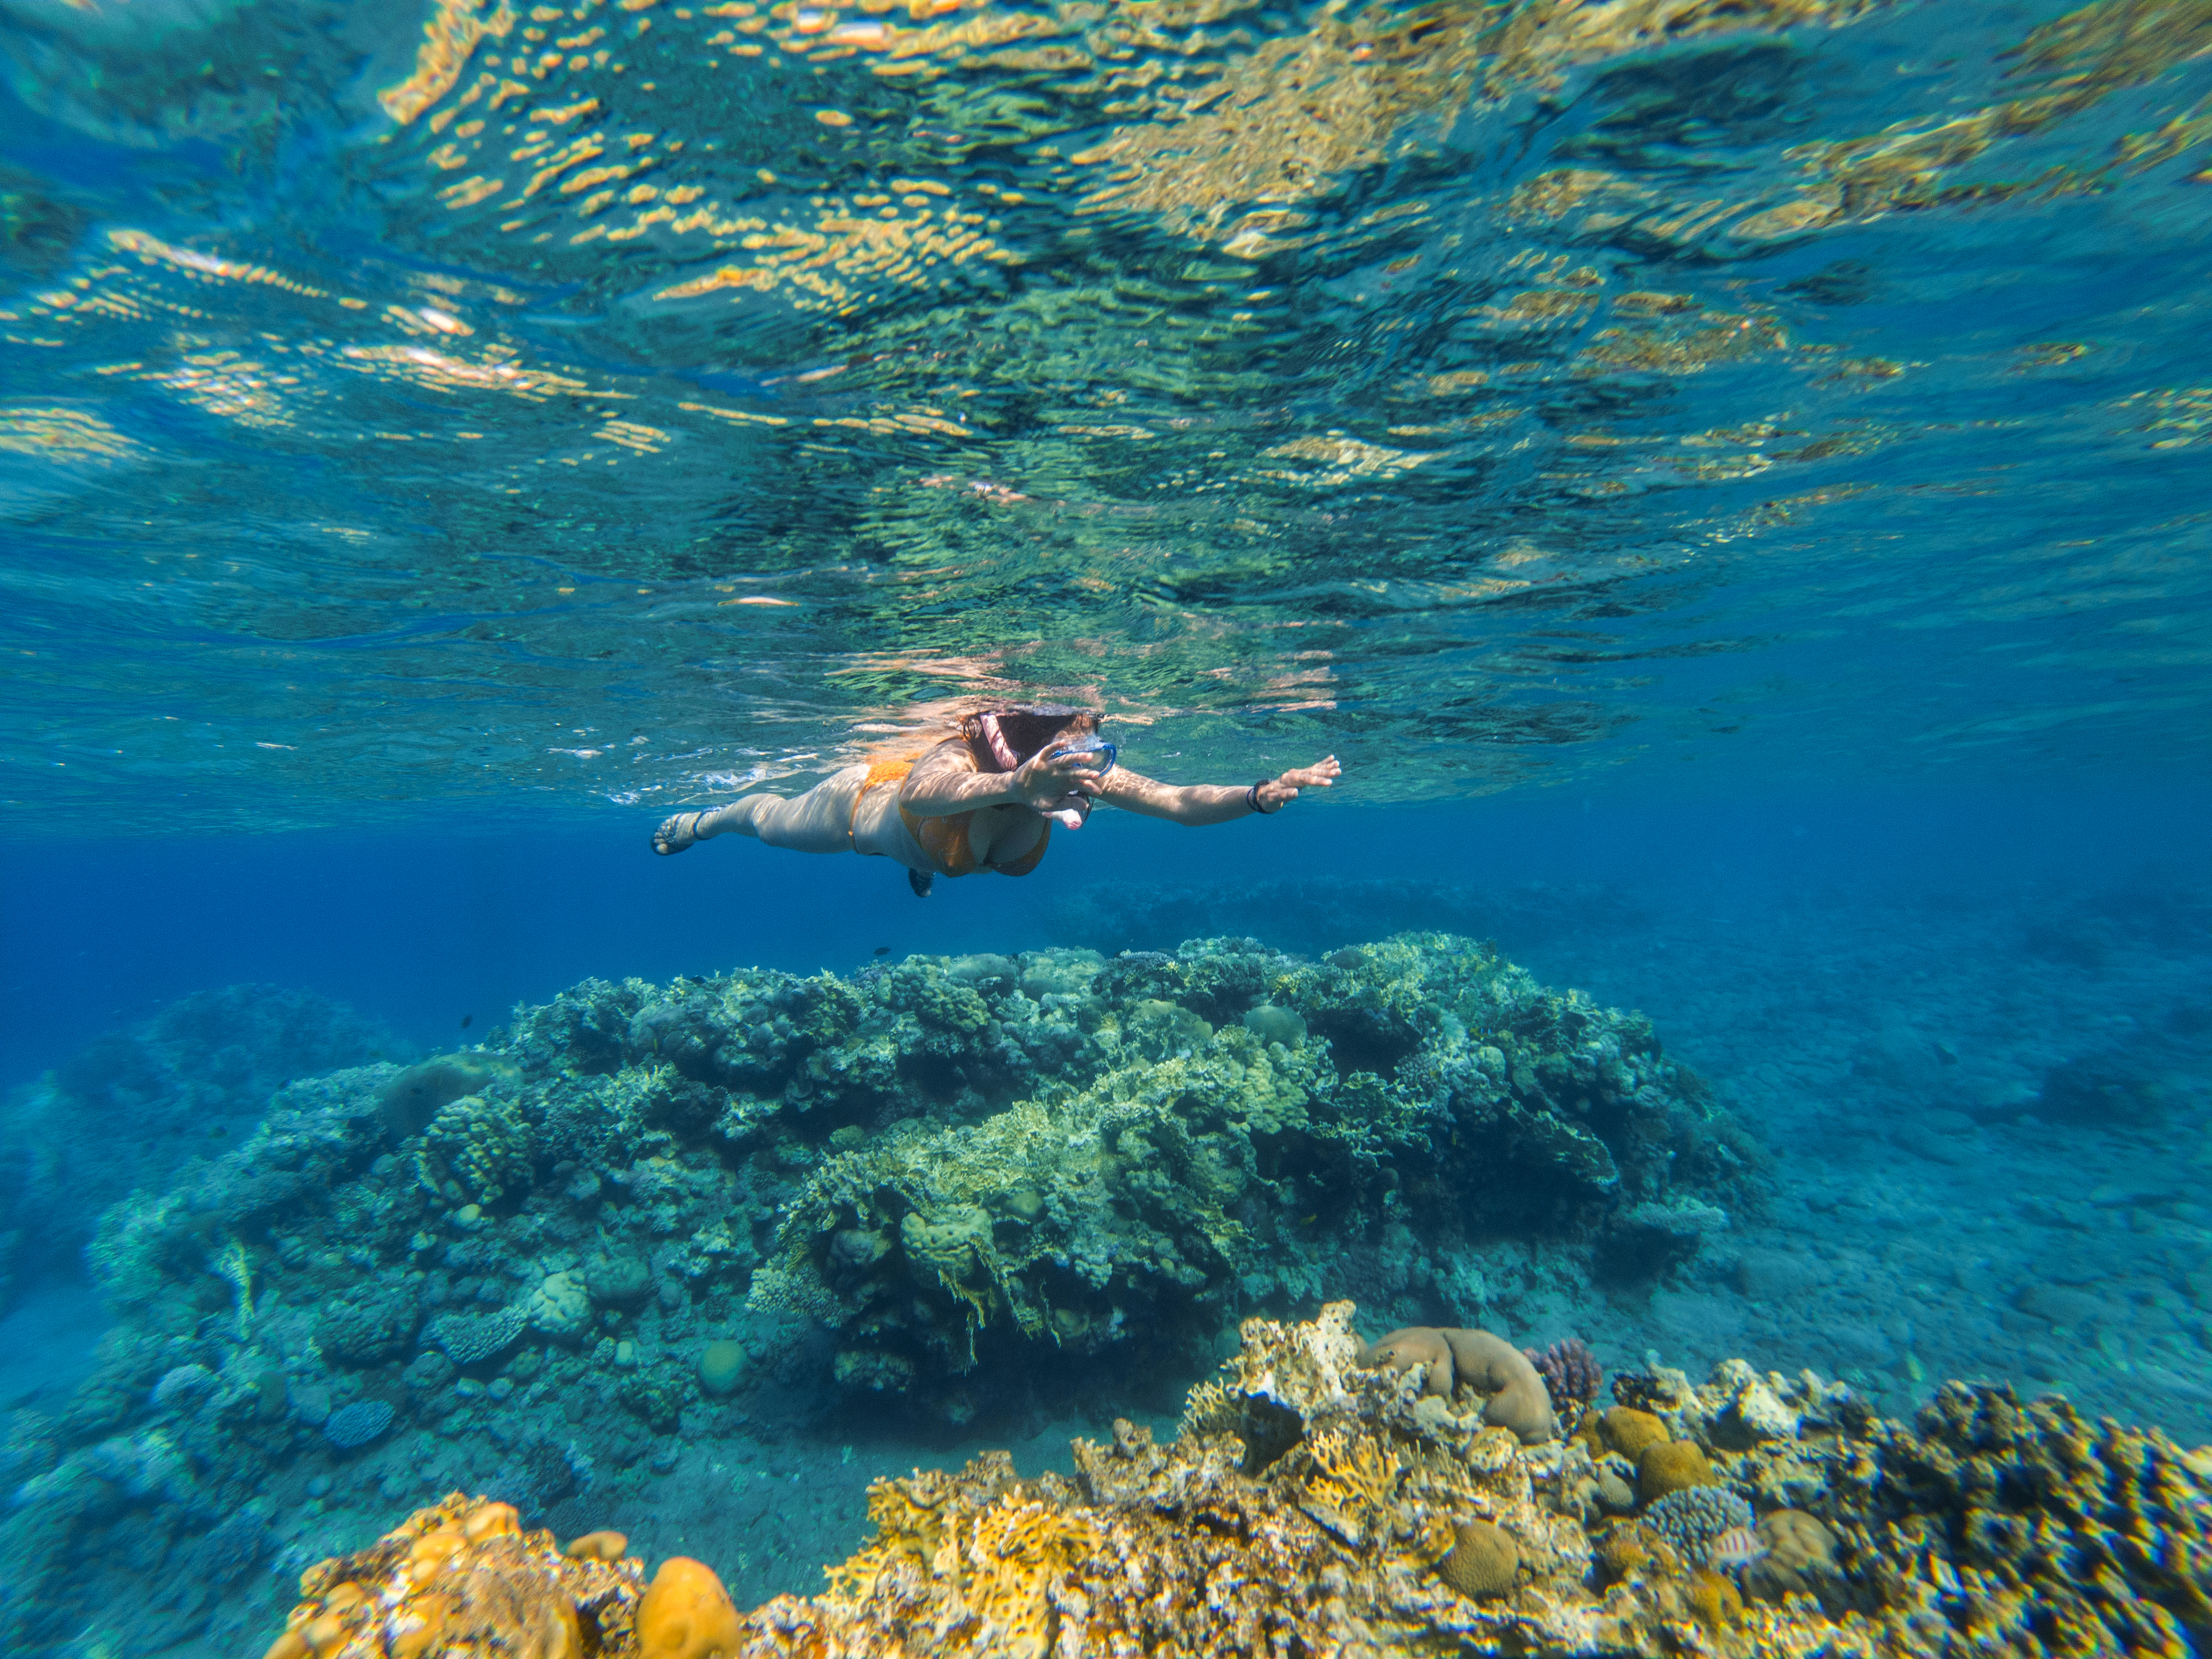 woman-snorkeling-underwater-above-coral-reef-GZYX2V4 copy